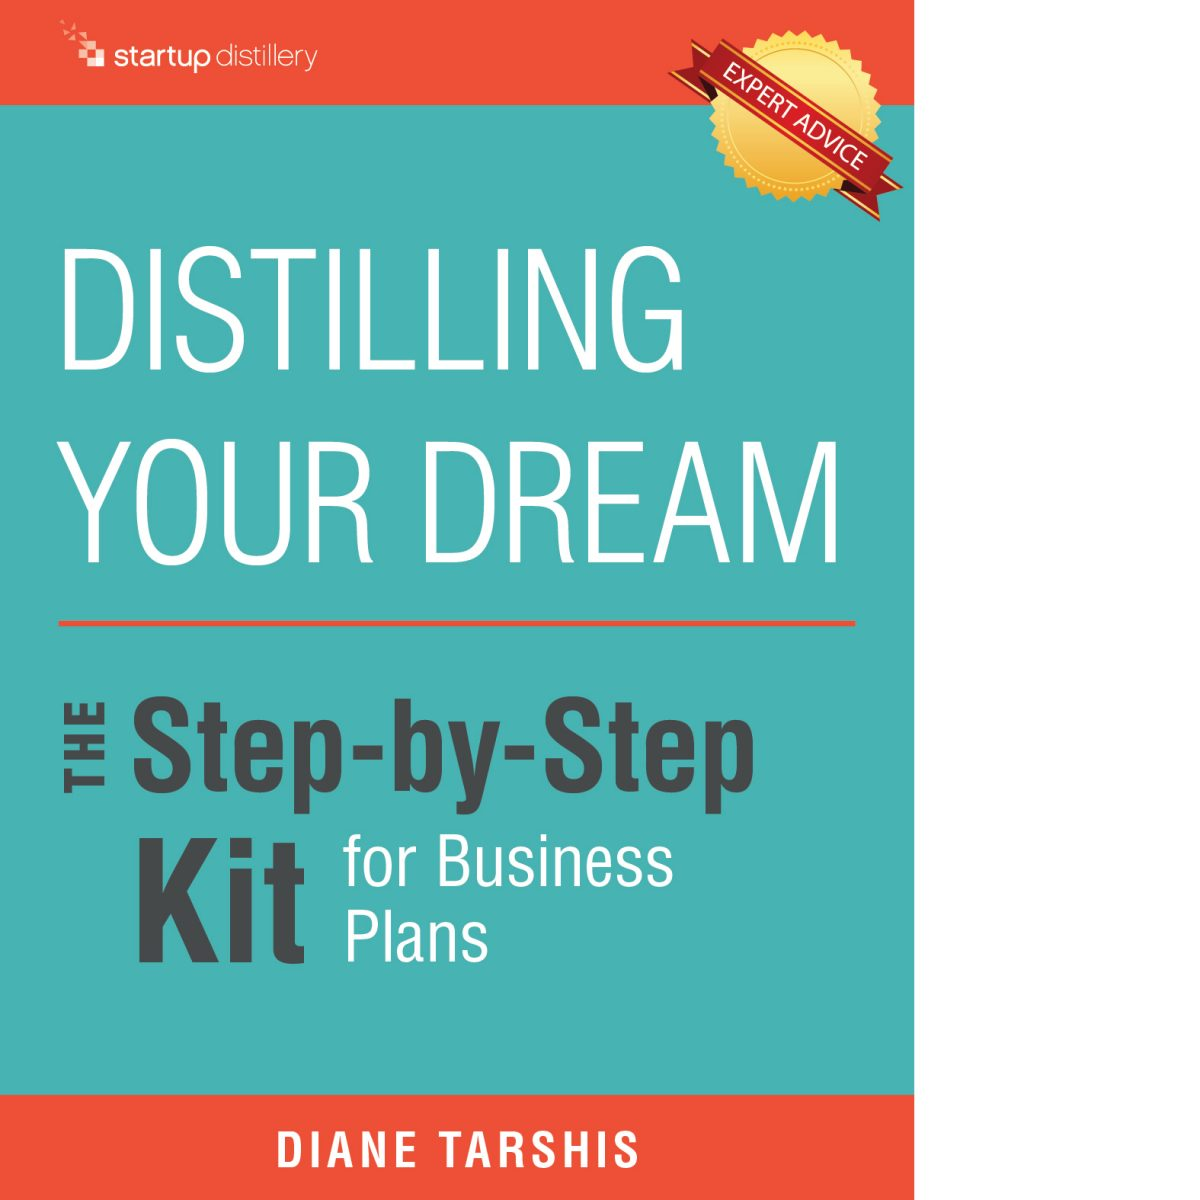 Distilling your dream business plan kit startup distillery distilling your dream business plan kit friedricerecipe Choice Image